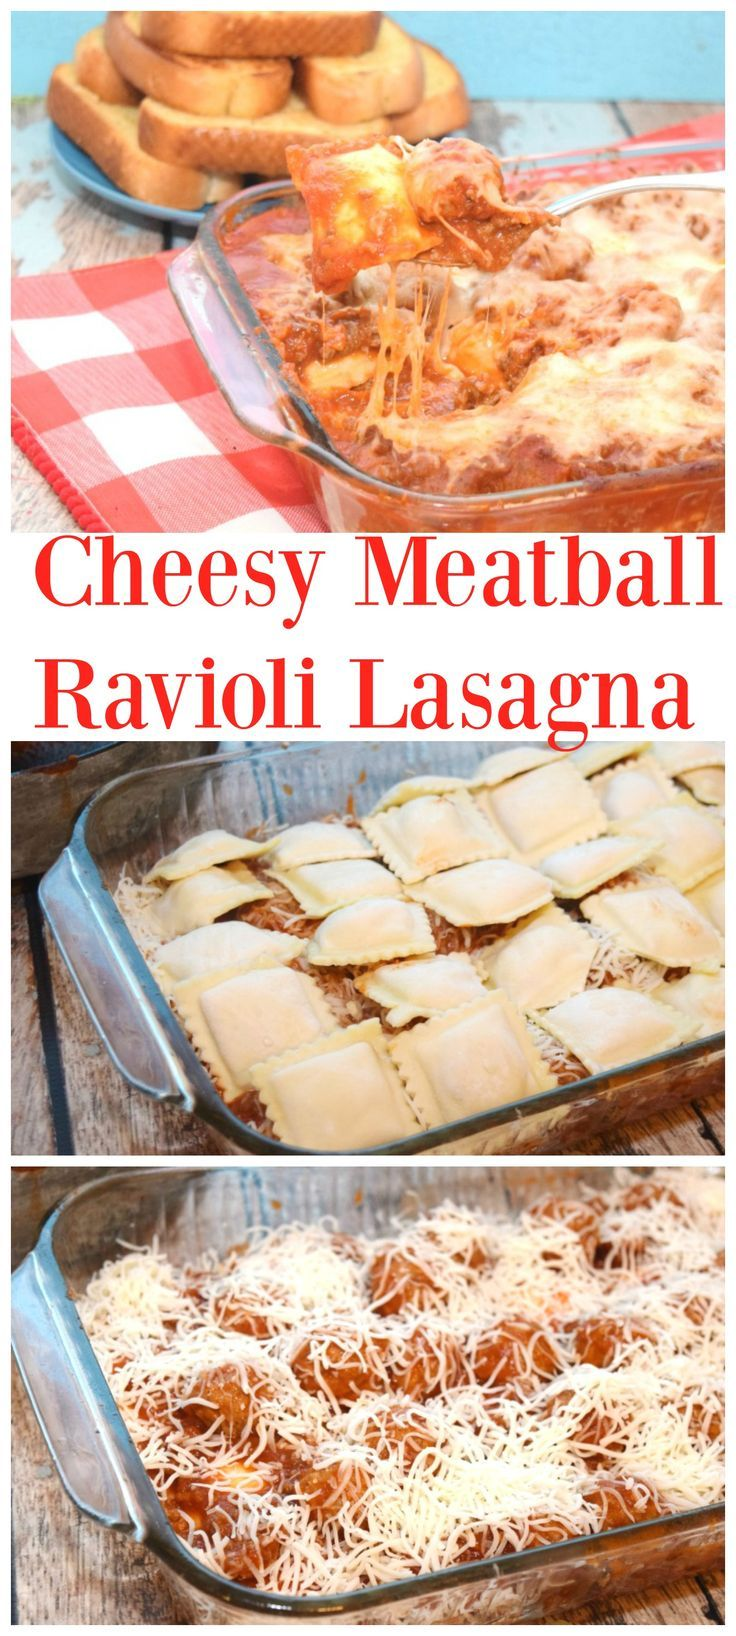 Need a great weeknight meal the family will love, but is easy to put together? Try my Cheesy Meatball Ravioli Lasagna for dinner - super easy & perfect for National Meatball Day next week on March 9th, 2017!   #ad #MeatballPerfection